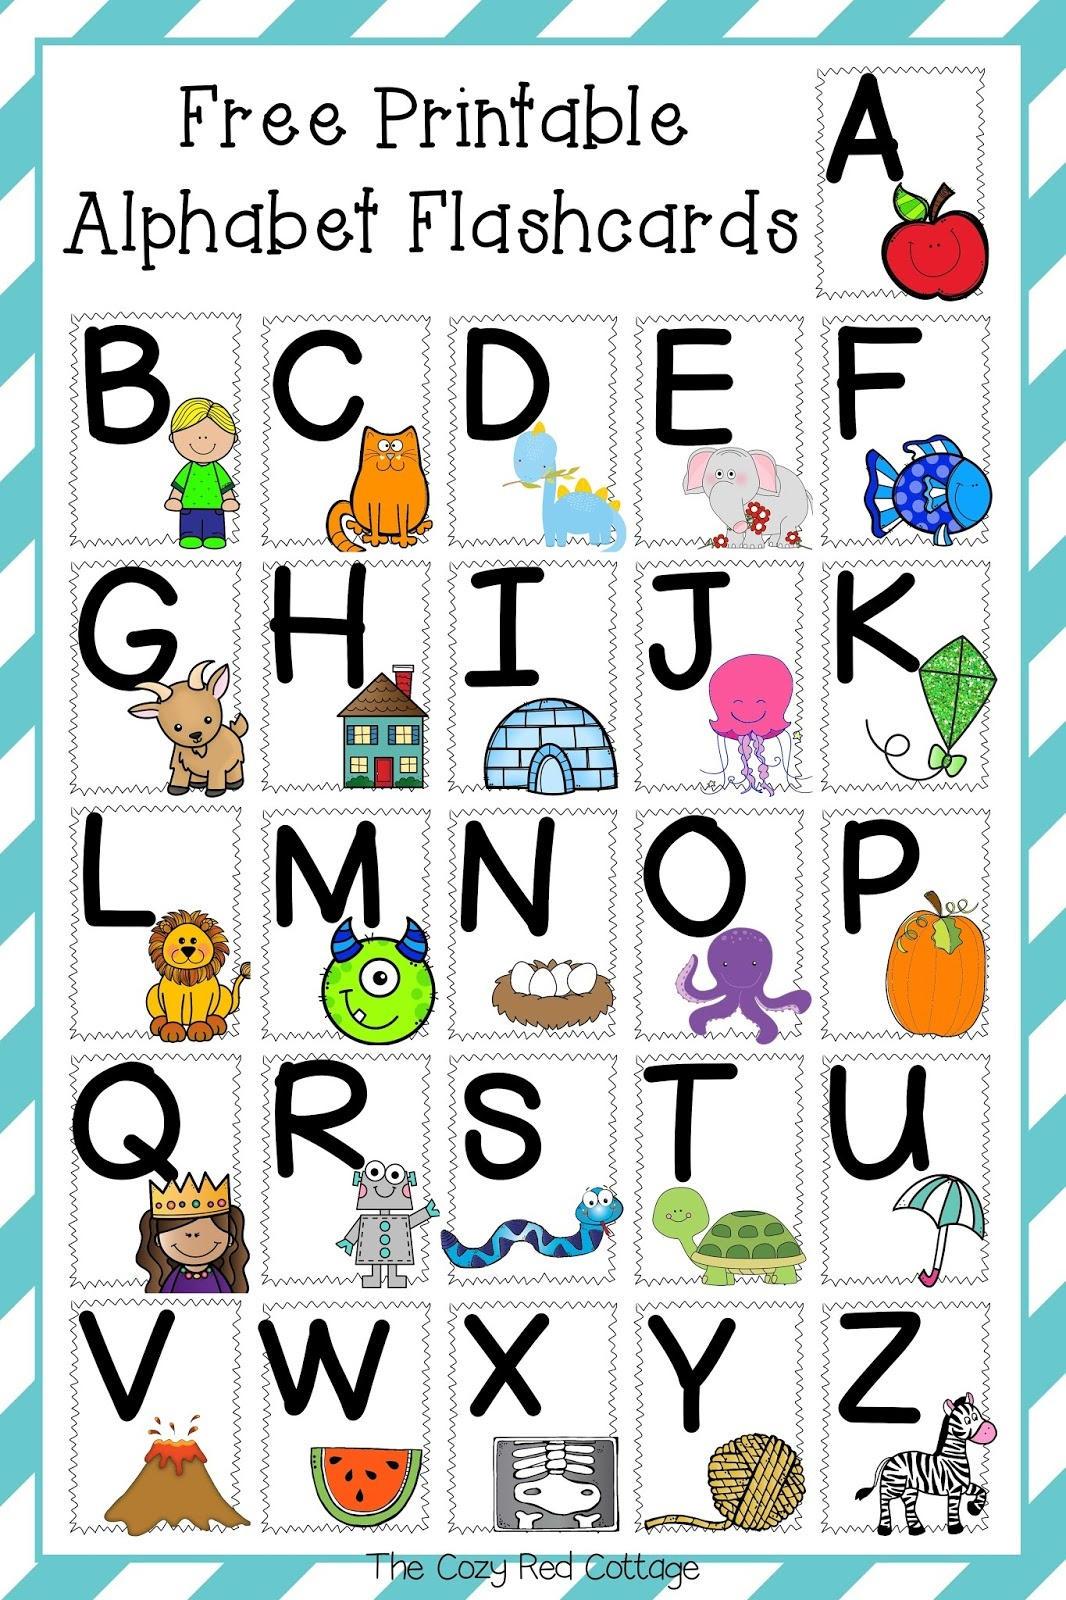 The Cozy Red Cottage: Free Printable Alphabet Flashcards - Free Printable Abc Flashcards With Pictures